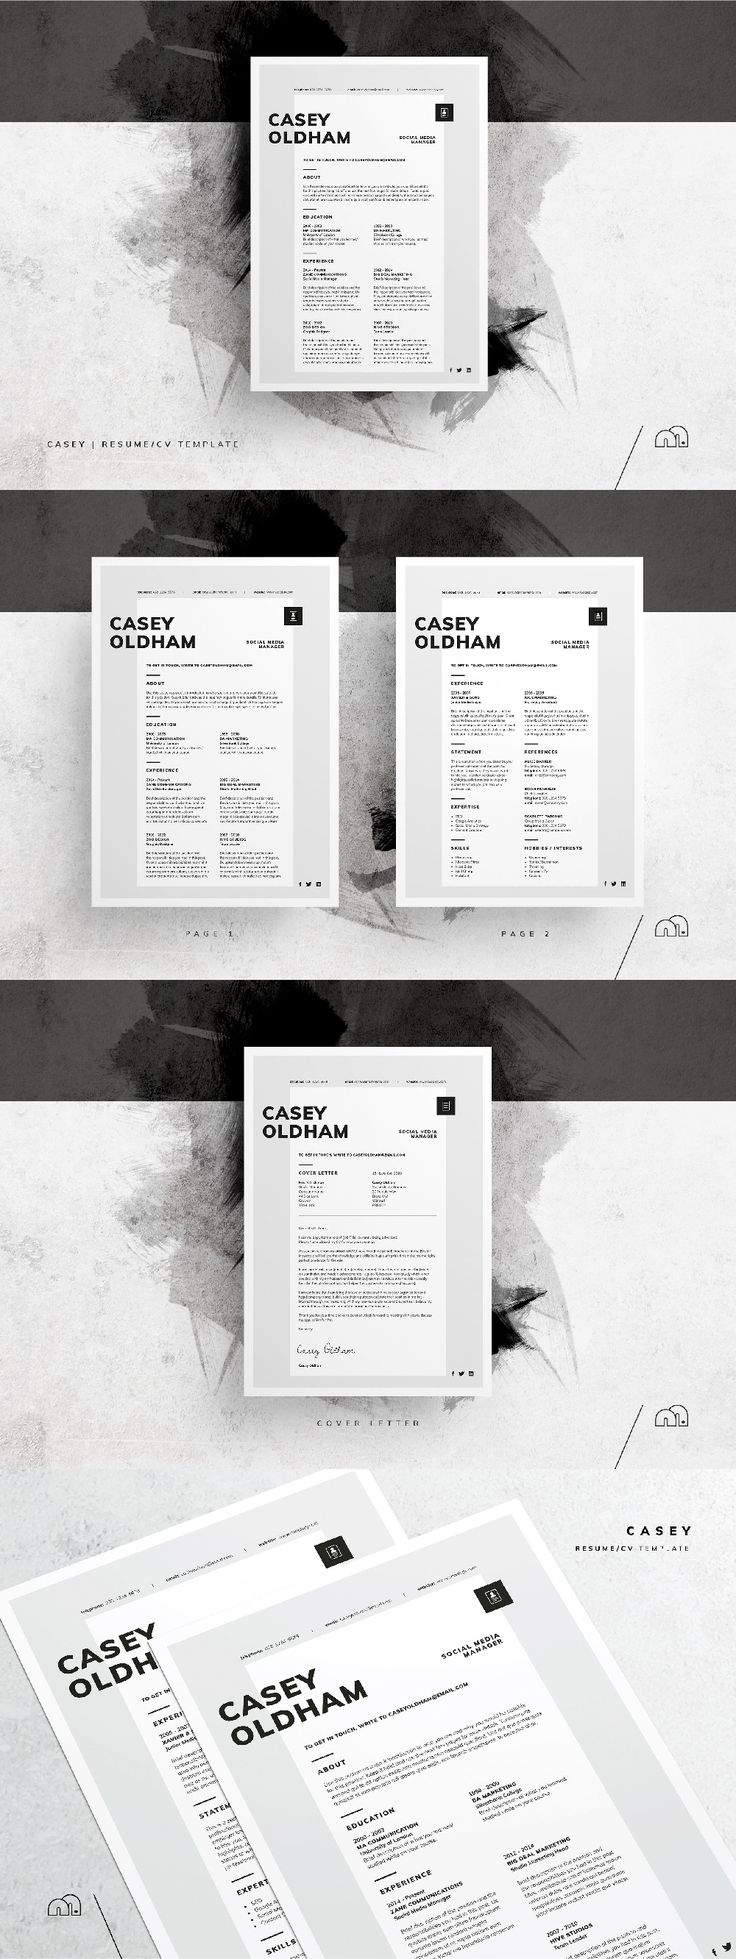 sample of resignation letter%0A Resume   CV Template  Casey For those looking for a professional template    u    Casey